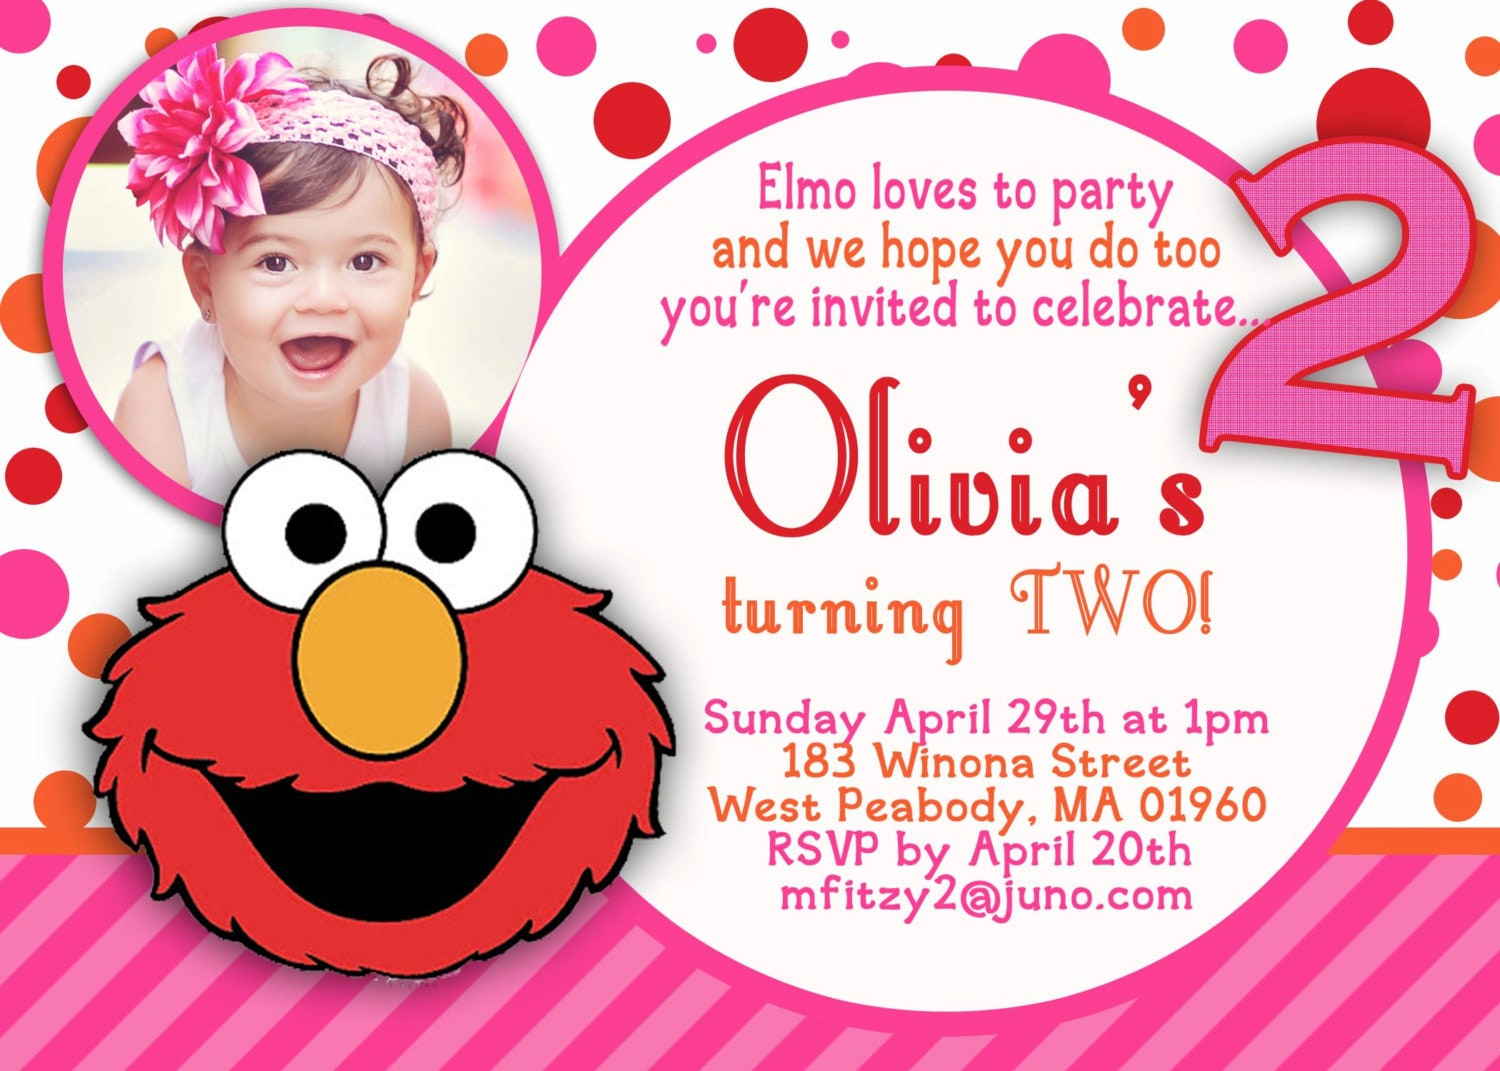 elmo template for invitations - hannah 2nd birthday on pinterest sesame street party